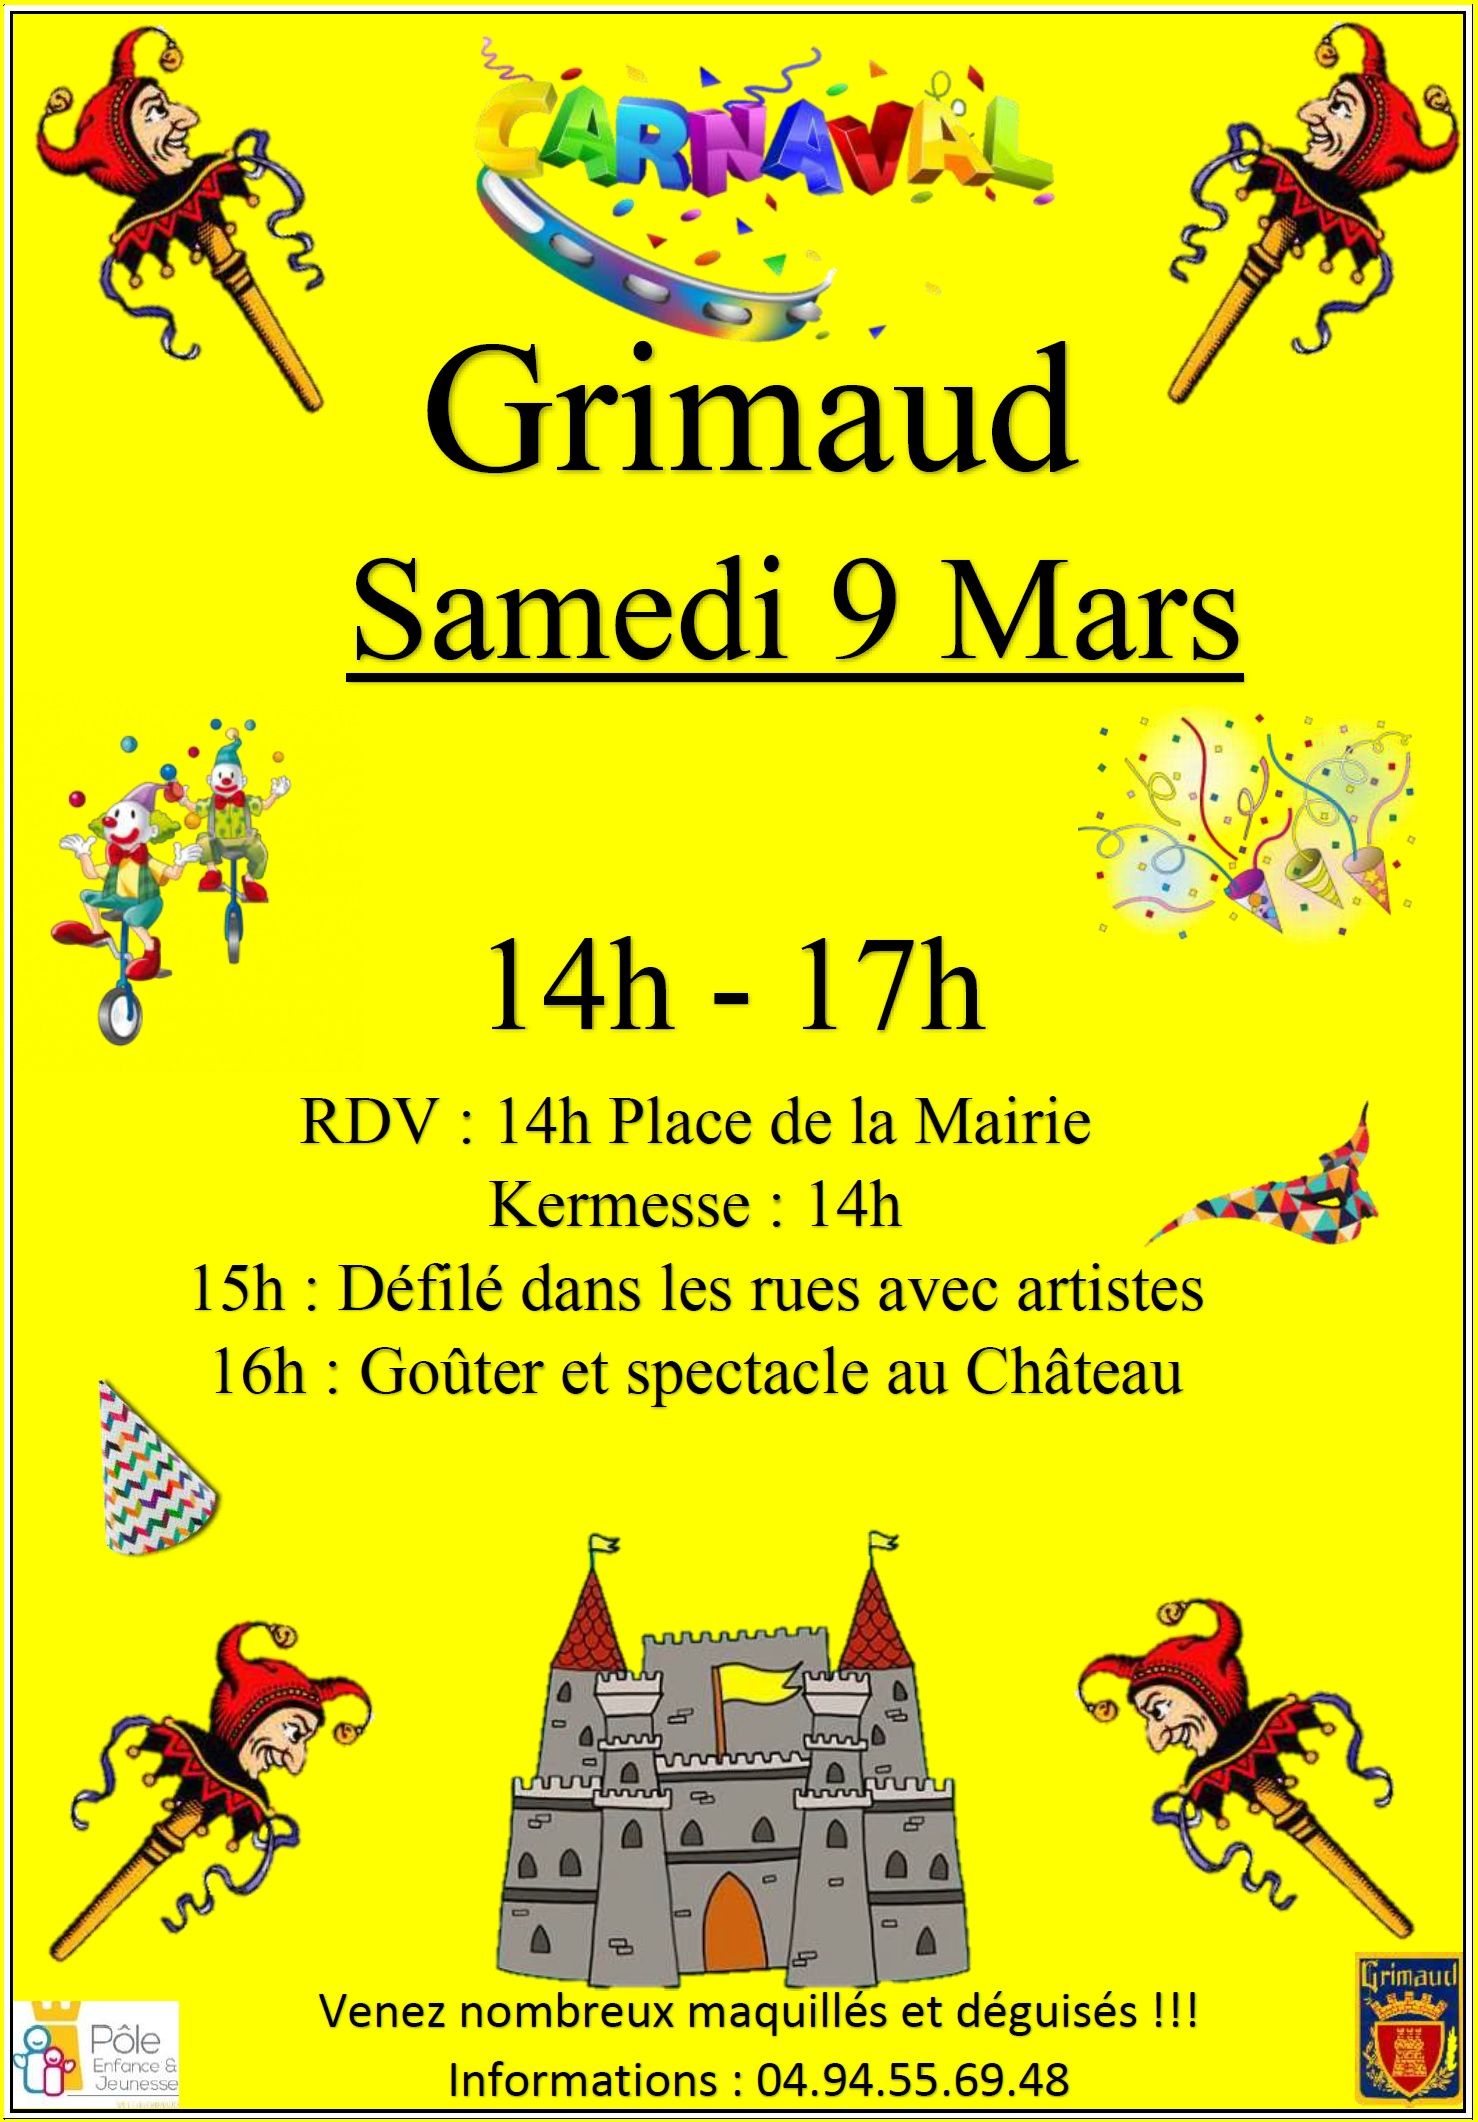 Saturday, March 9, 2019: Carnival of Grimaud